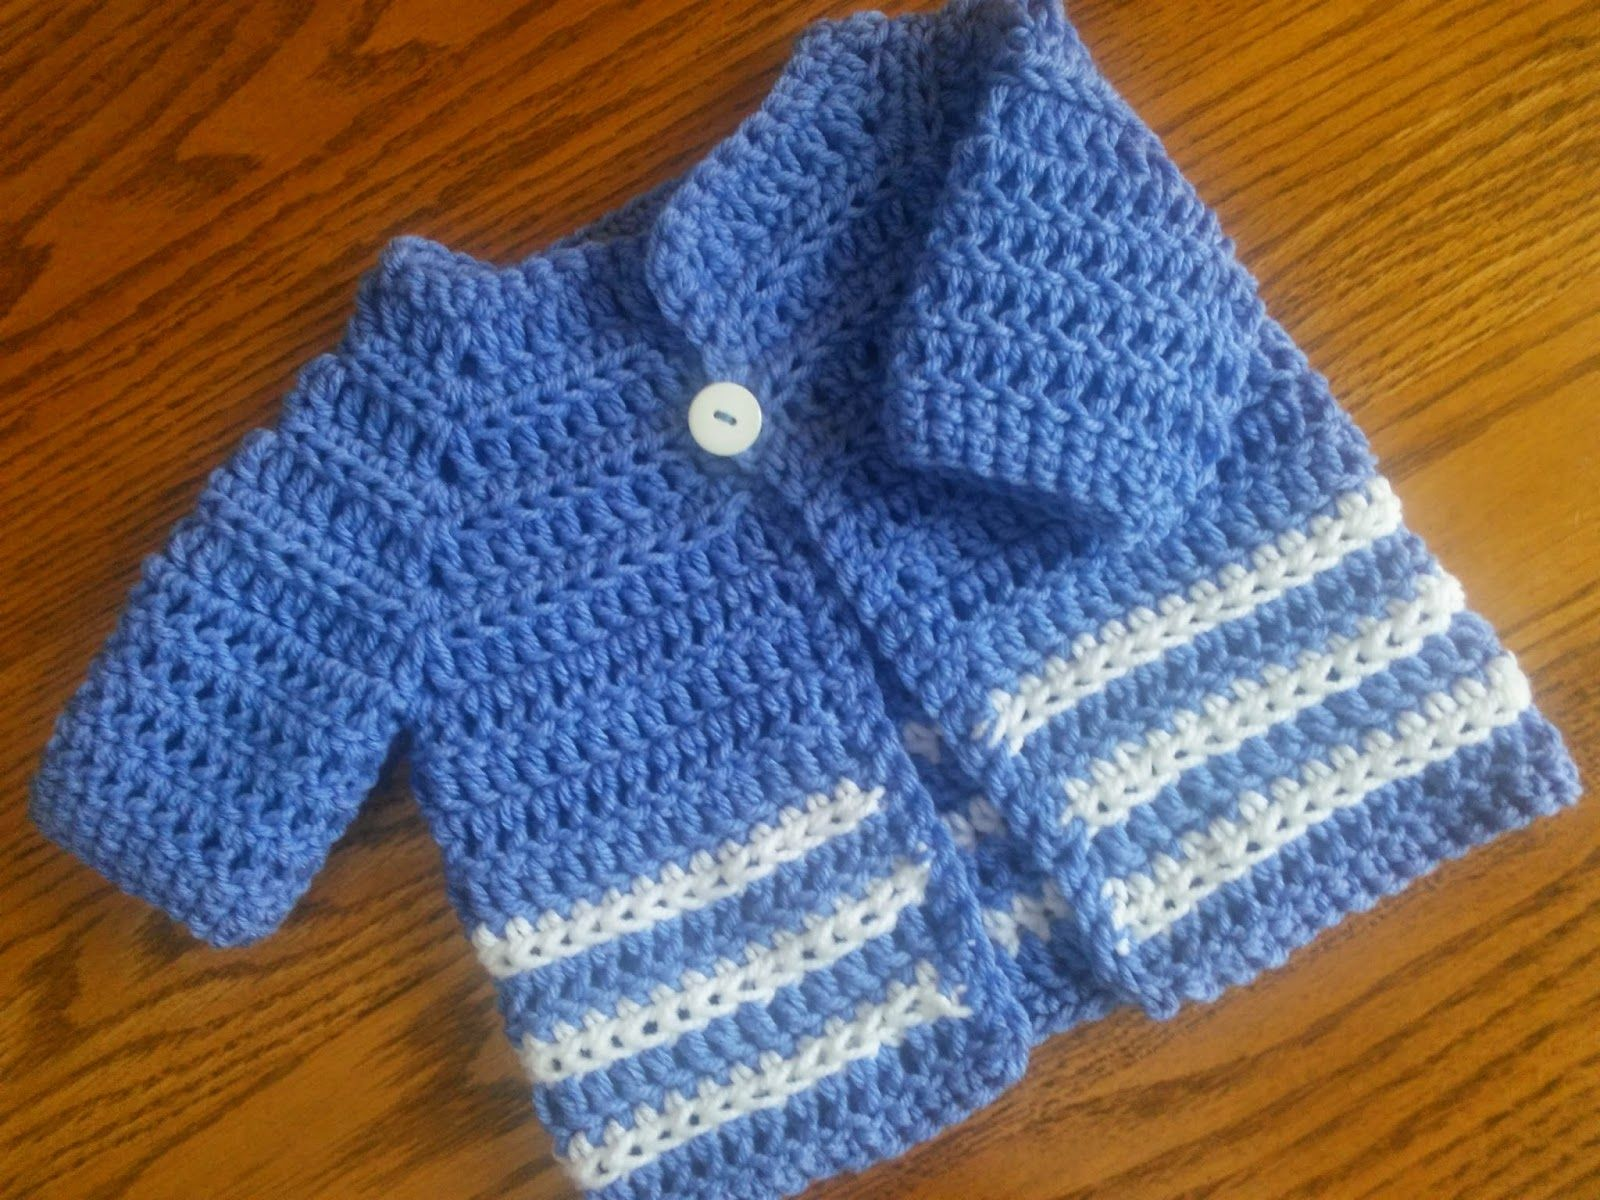 Beb del suter modelo del ganchillo fcil sacos pinterest free crochet sweater patterns for babies sweater pattern bankloansurffo Image collections